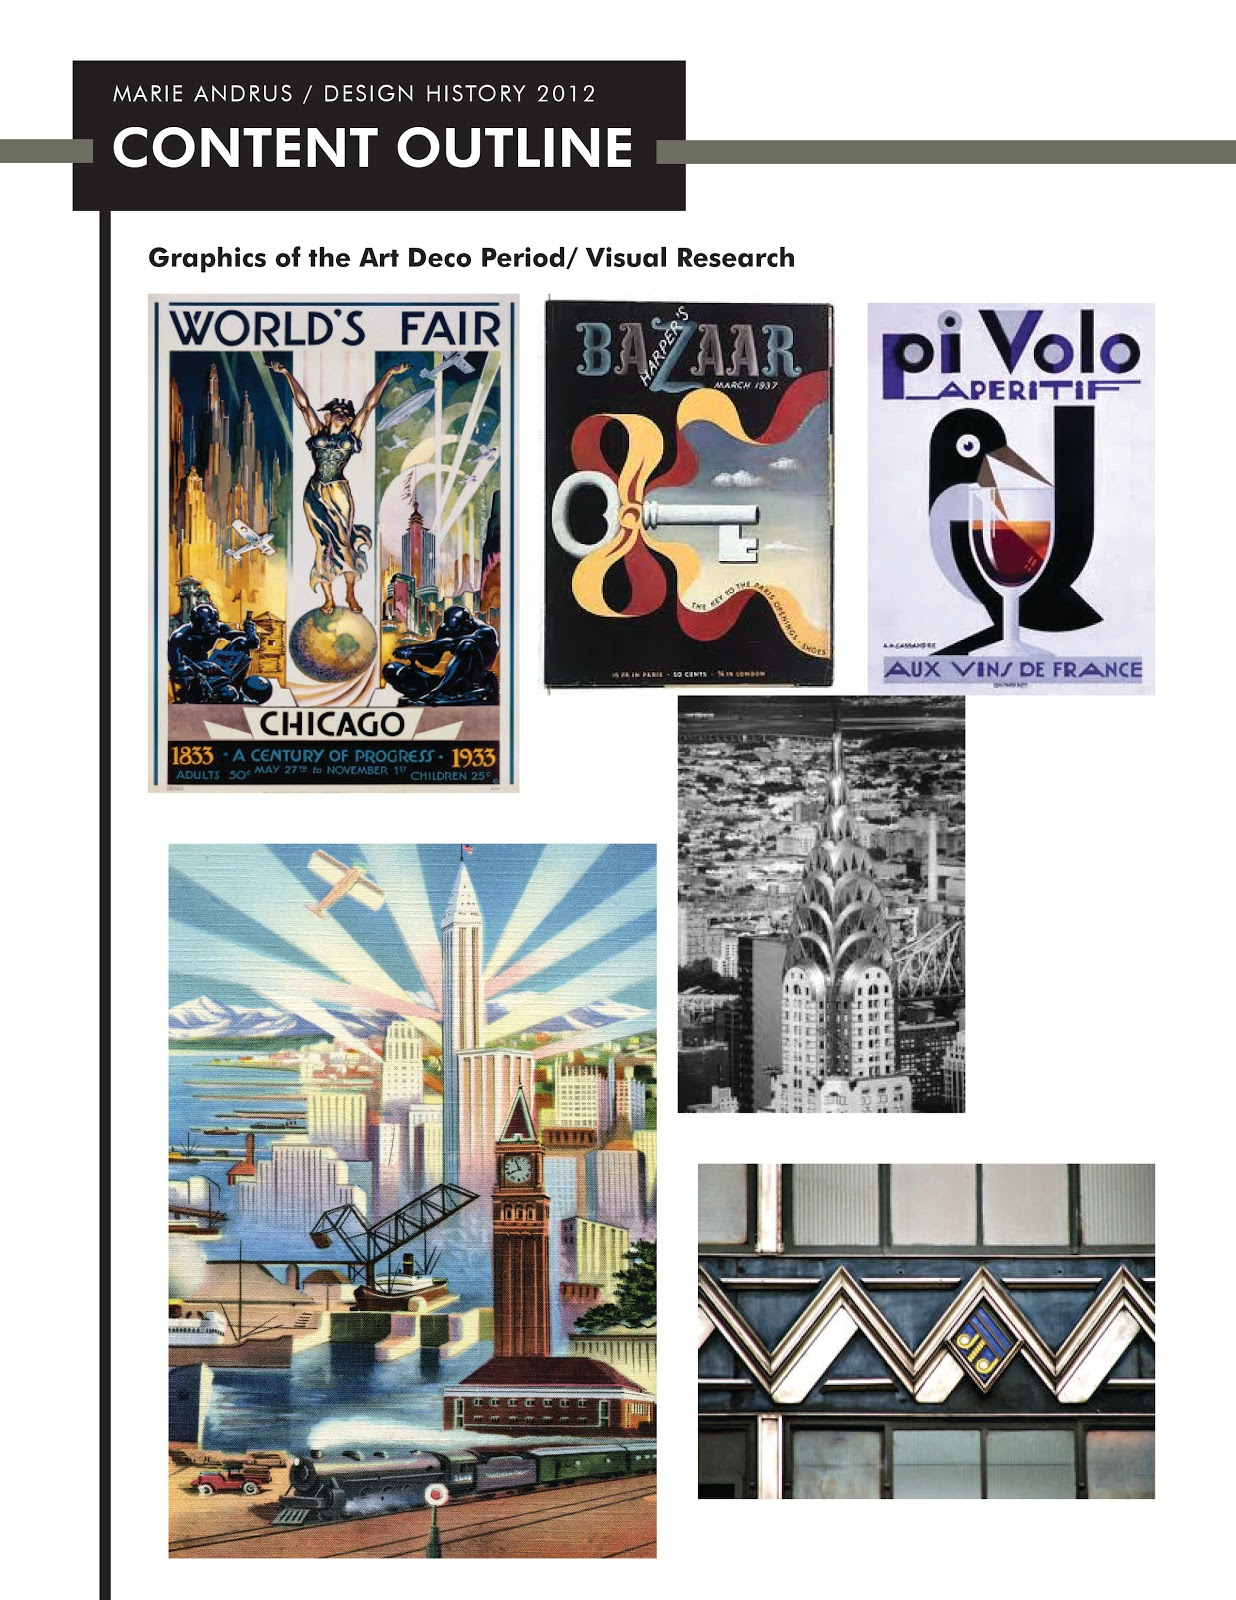 art deco movement Art deco is a visual arts movement that first emerged in france between the two world wars, gaining international notoriety in the 1930s and 1940s.